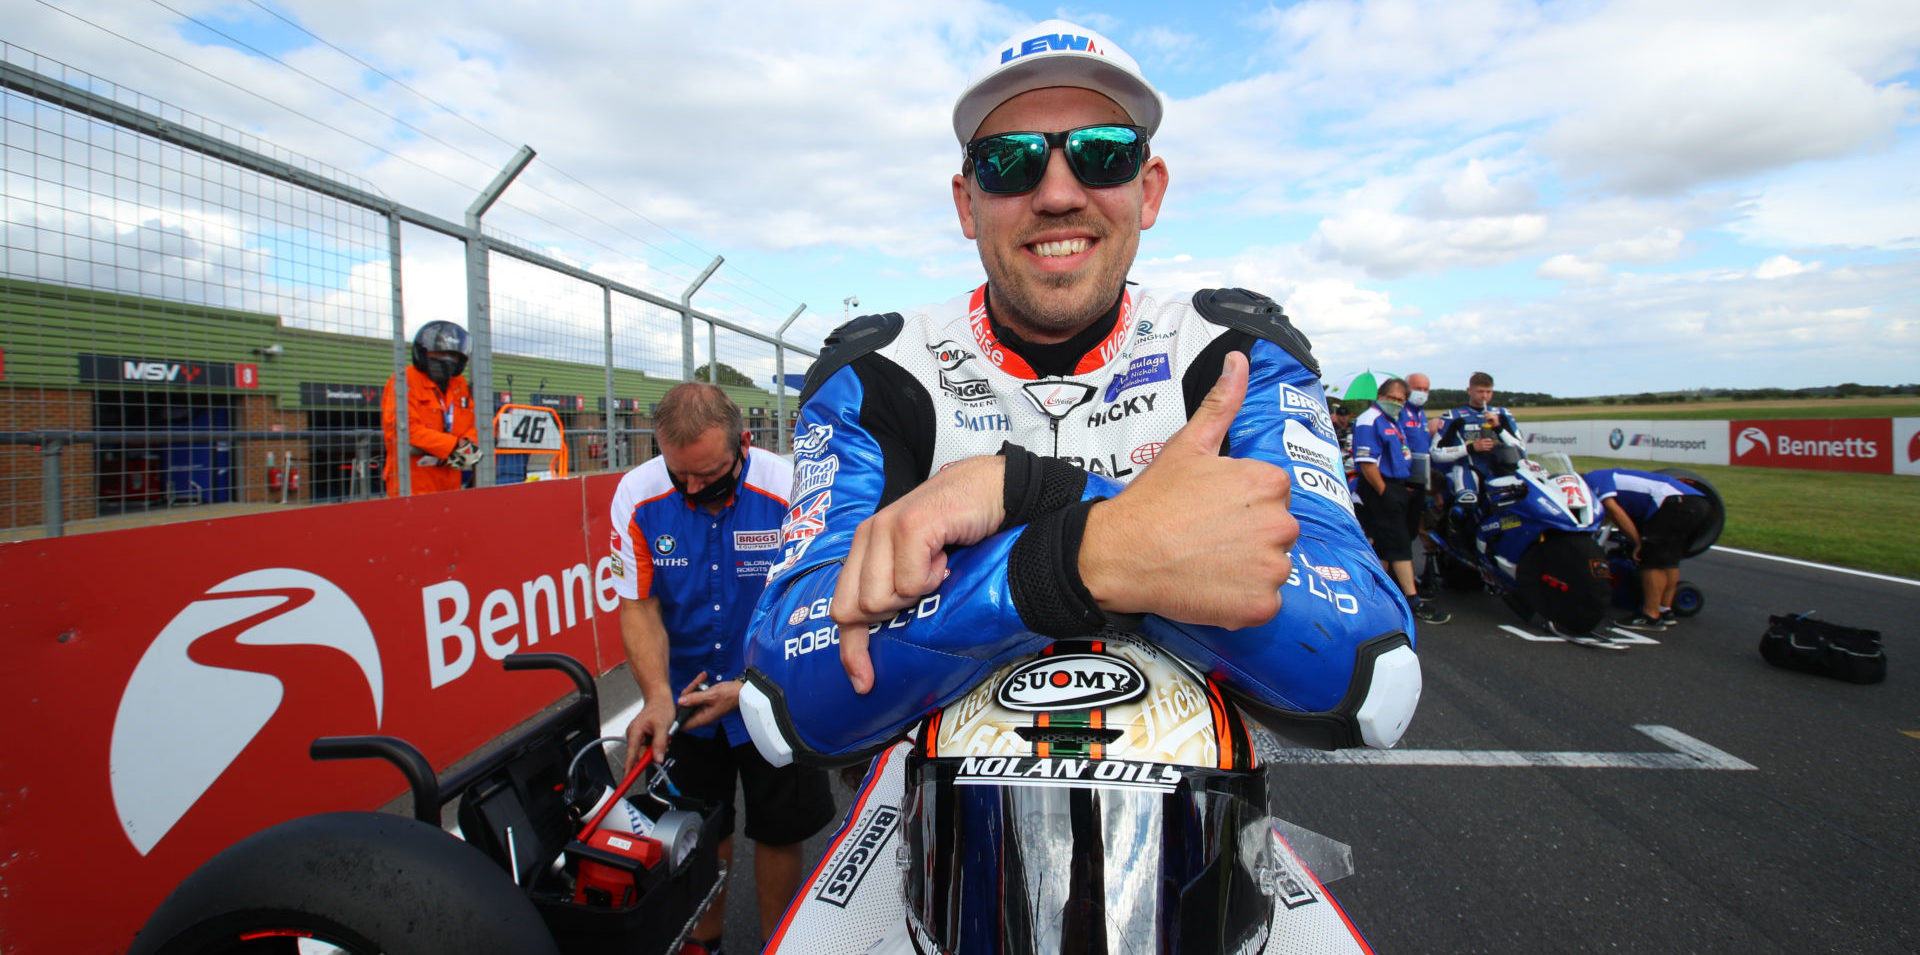 World Endurance Hickman Joins Bmw Team For 24 Hours Of Le Mans Roadracing World Magazine Motorcycle Riding Racing Tech News